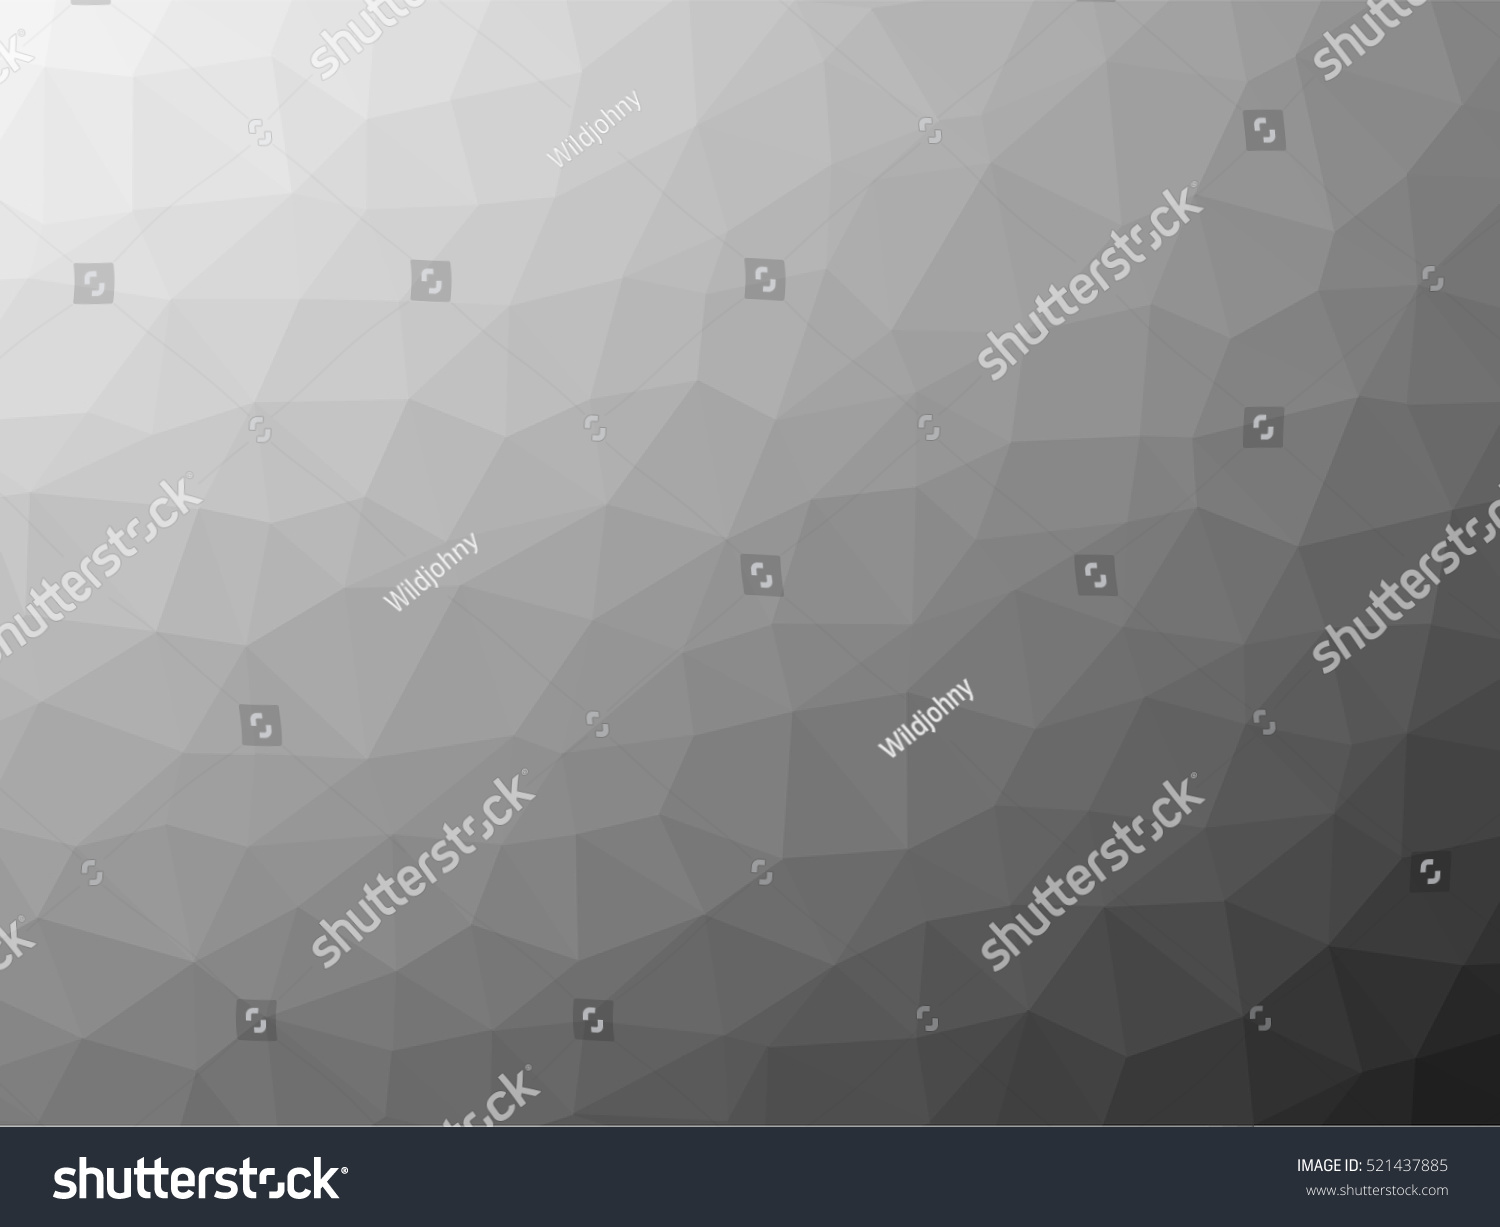 Grayscale gradient art